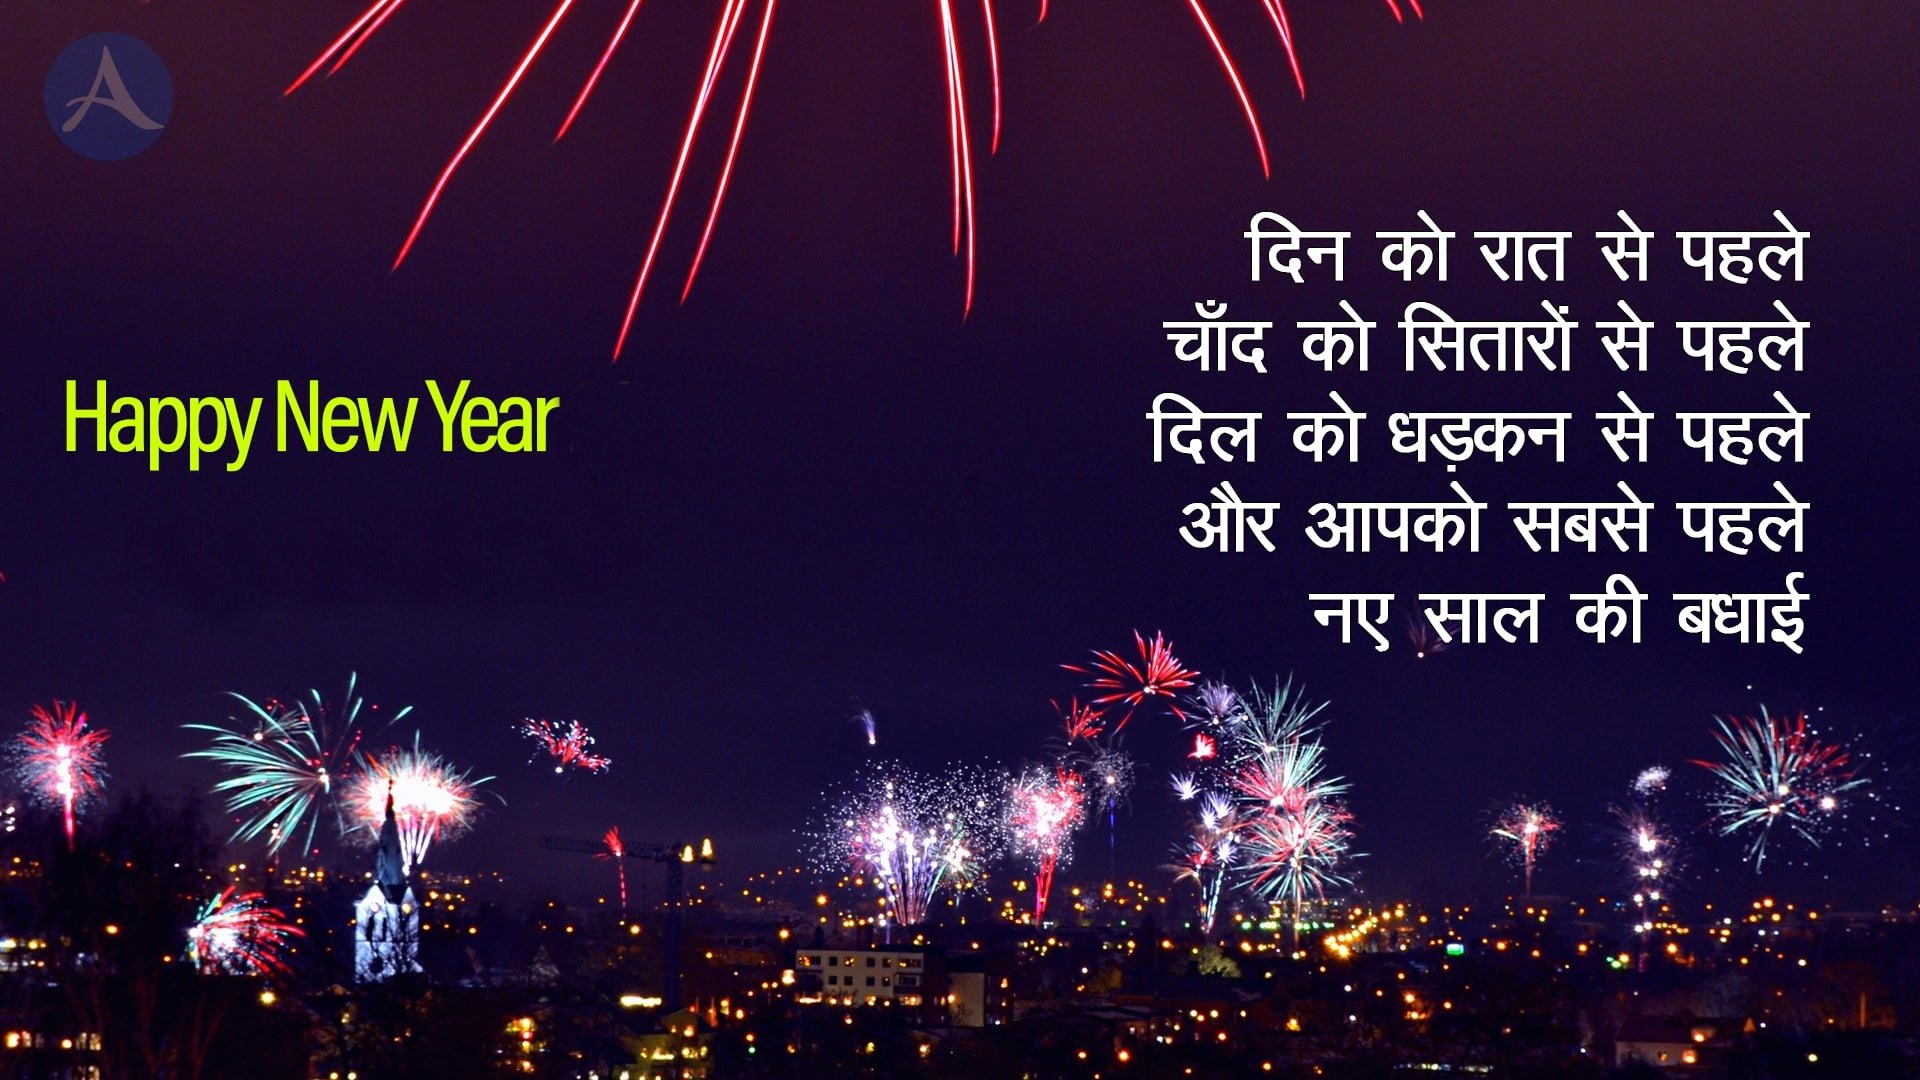 Wishing you a Happy New Year Wishes